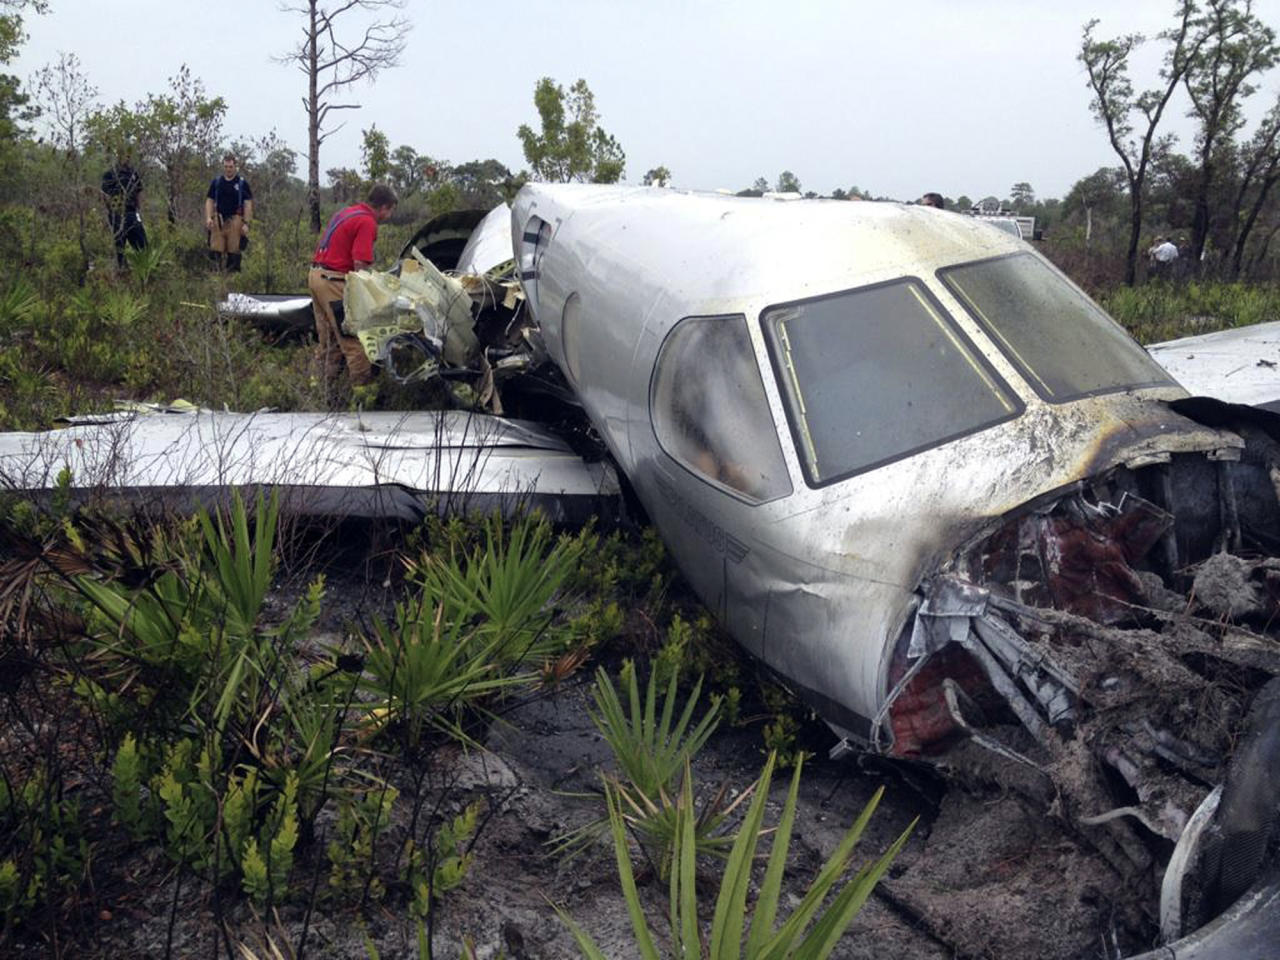 In this photo provided by the Polk County Sheriff's Office, emergency personnel investigate the site where a Pilatus PC-12, a single-engine turboprop passenger plane, crashed near Lake Weohyakapka, aka Lake Walk In the Water, in southeast Polk County, Fla. on Thursday, June 7, 2012. Ronald Bramlage, 45, of Junction City, Kan., who was piloting the plane, his wife Rebecca and their four children were killed in the crash. (AP Photo/Polk County Sheriff's Office)